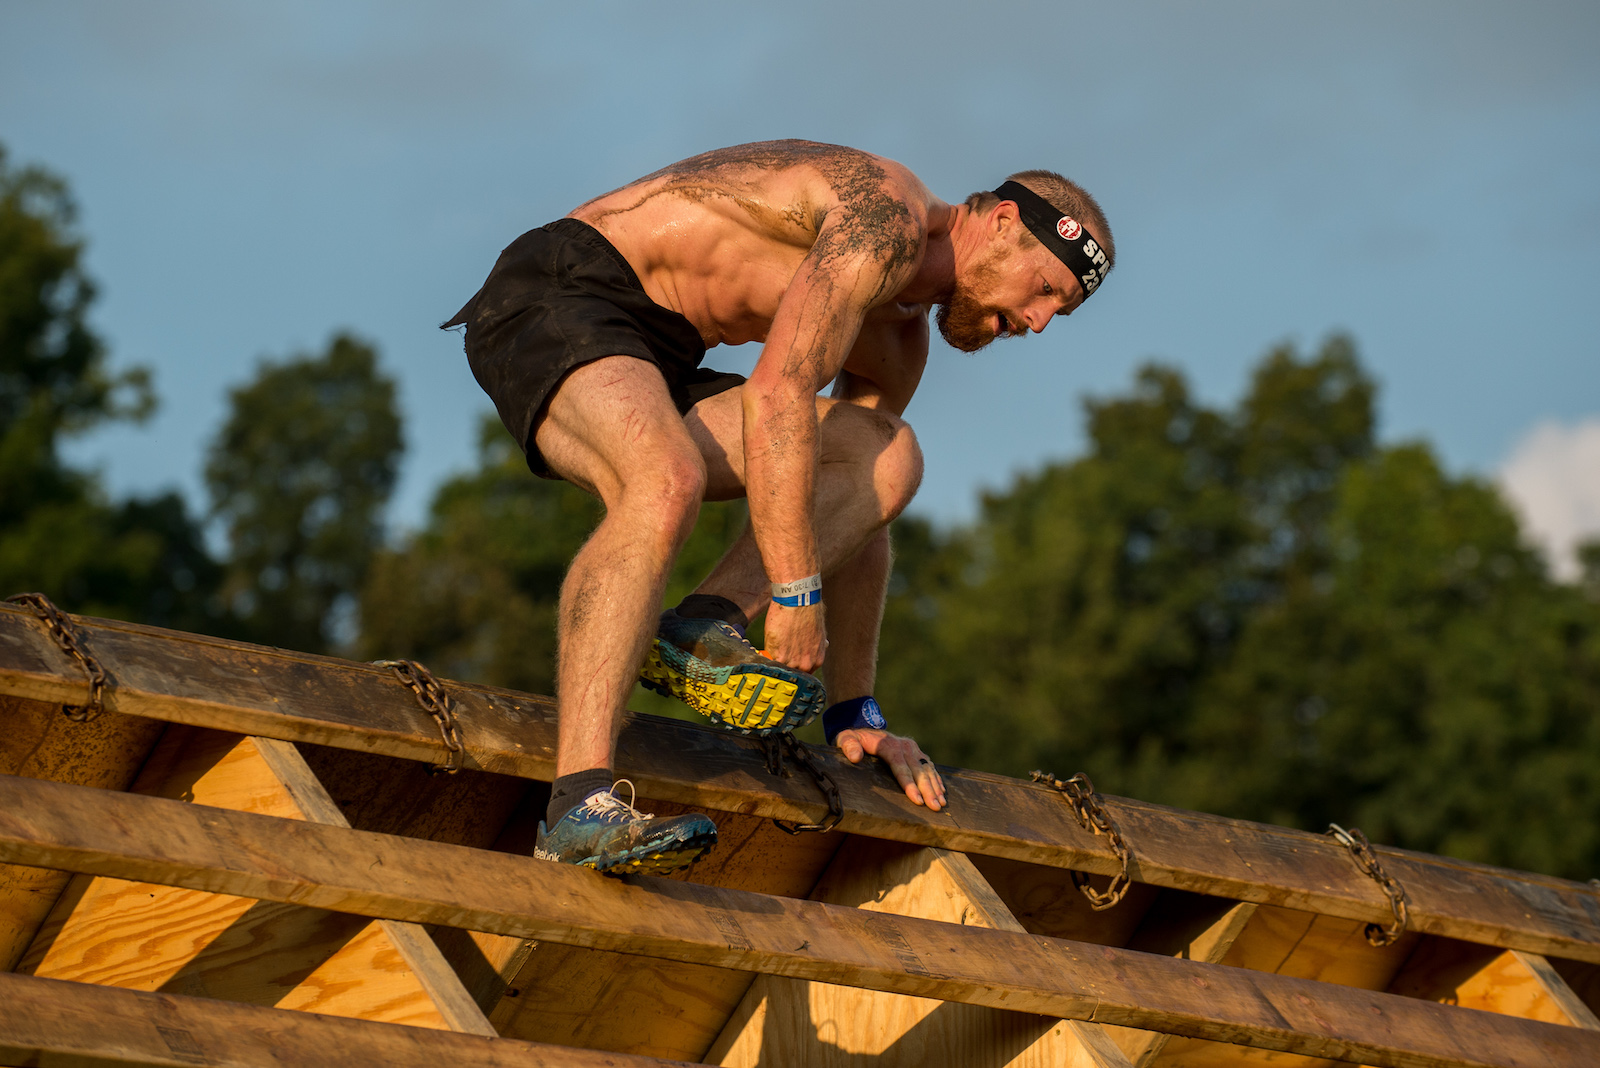 For Spartan Racers: Activities to warm-up or cool down!